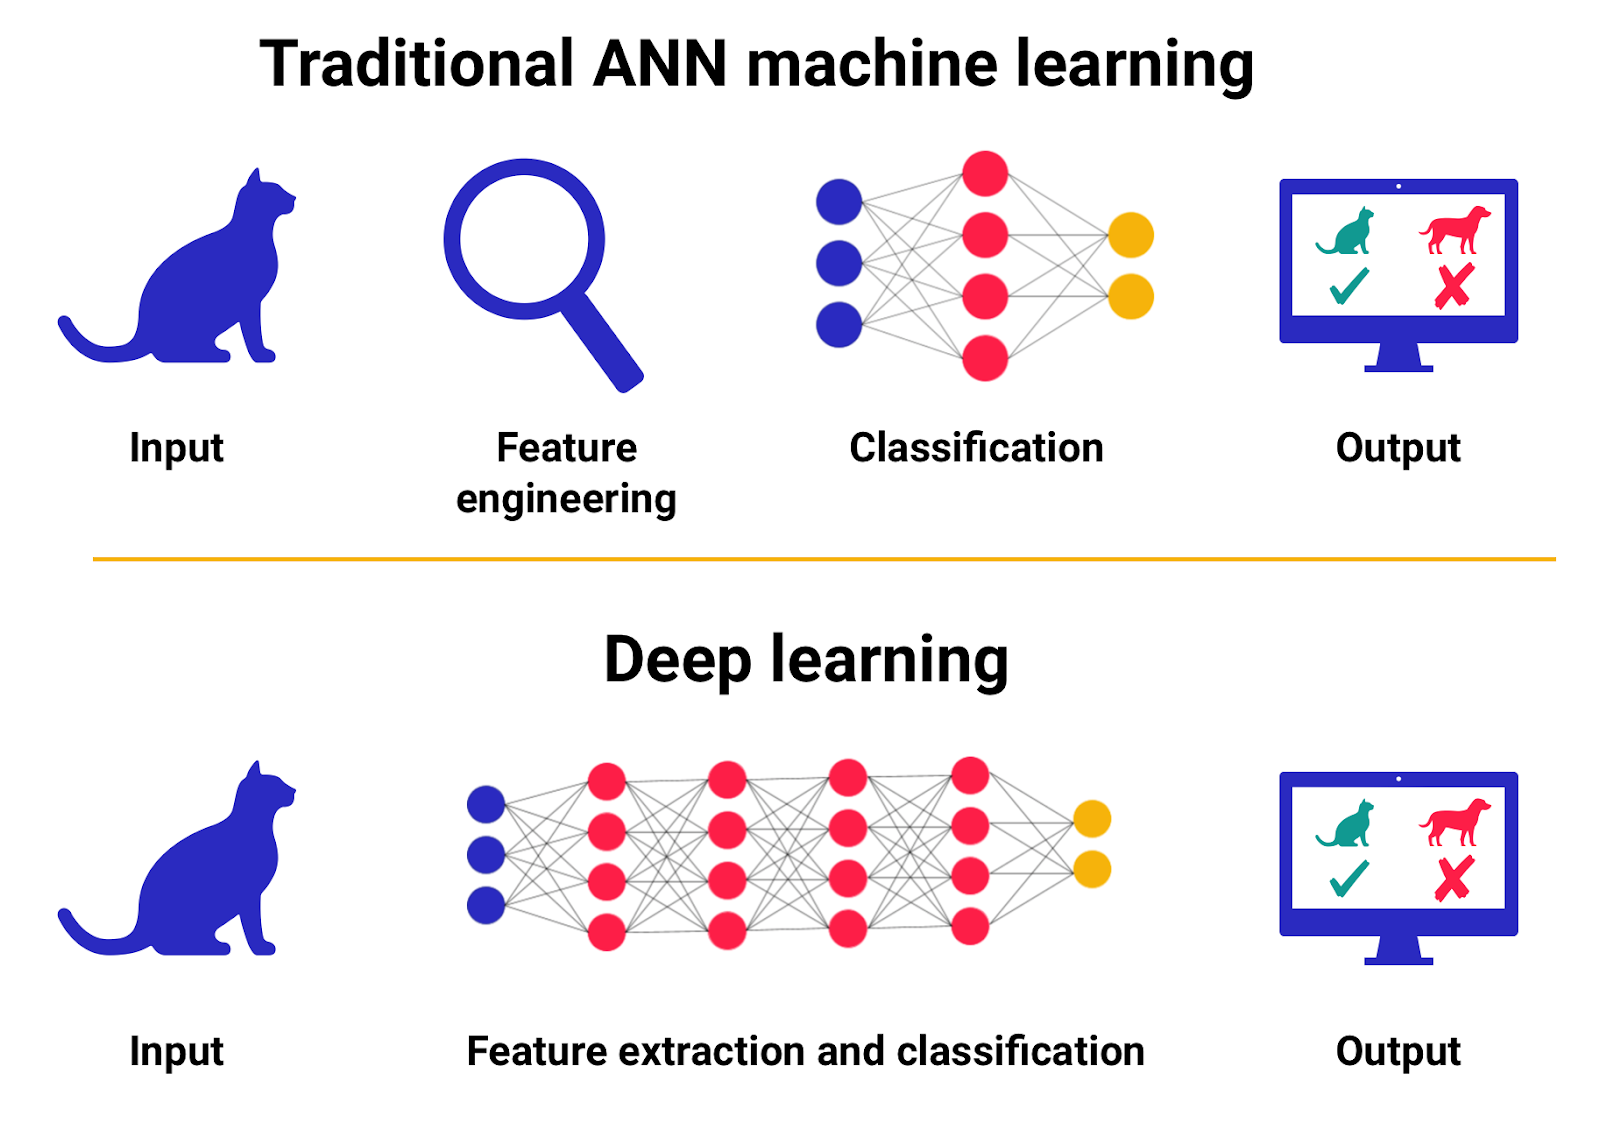 In deep learning systems like Sonasoft NuGene, you don't need feature engineering